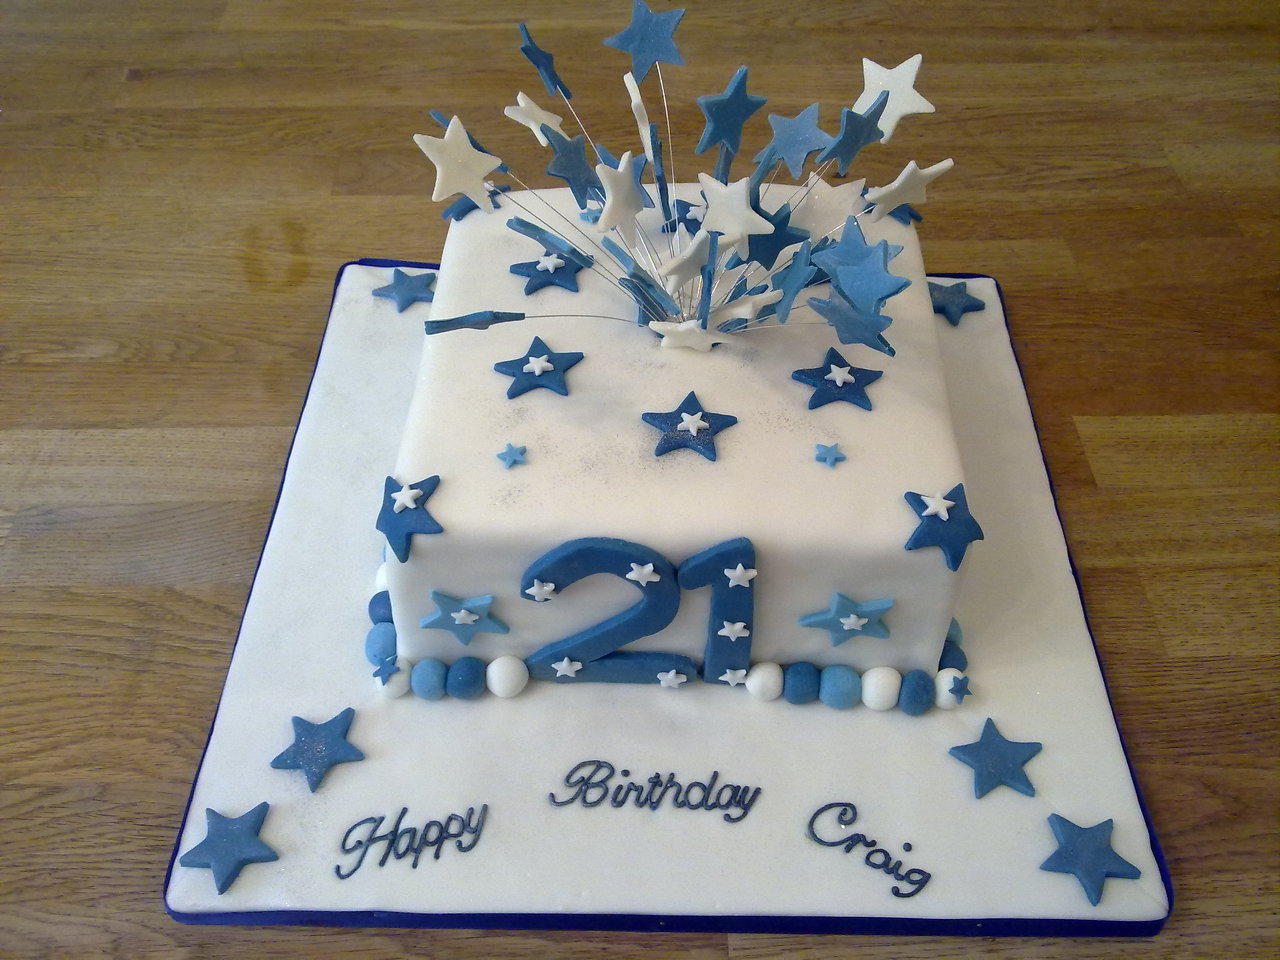 21st birthday cakes ideas - Birthday Cake Designs Ideas